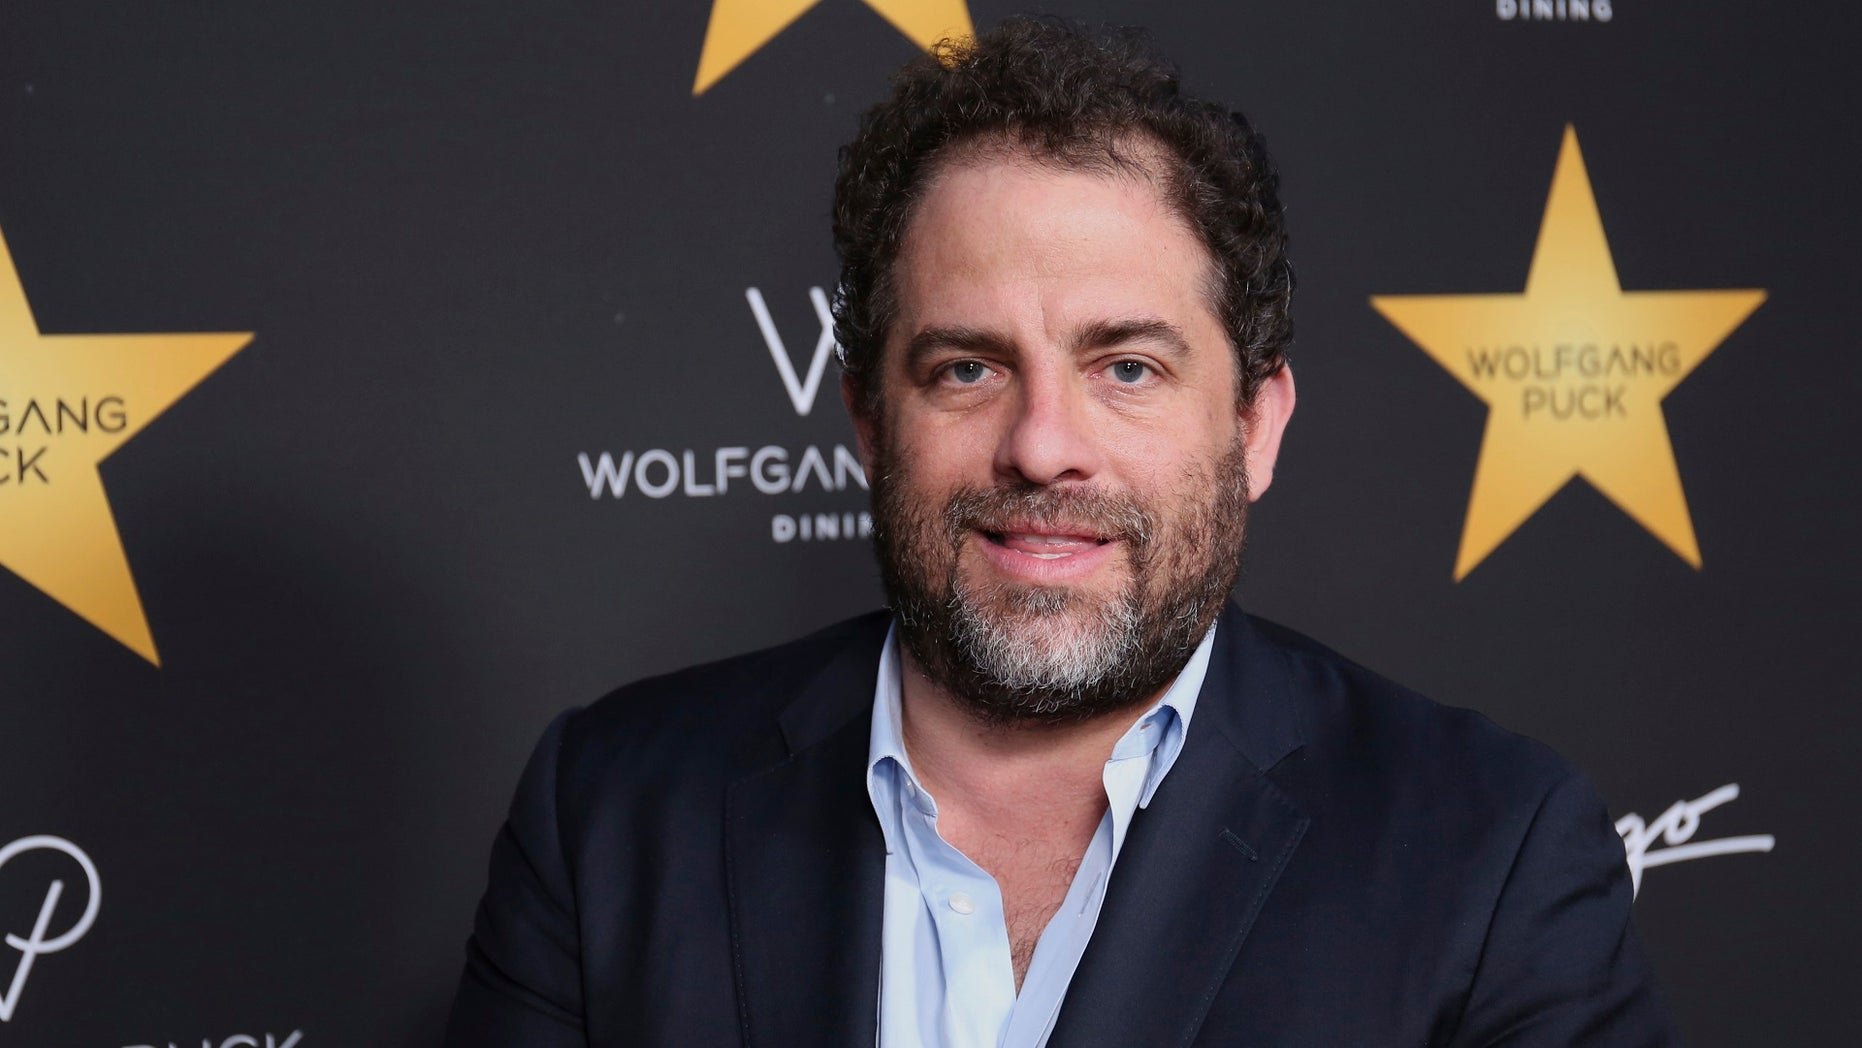 Playboy has decided to hold off working with Brett Ratner's movie house following sexual assault allegations.